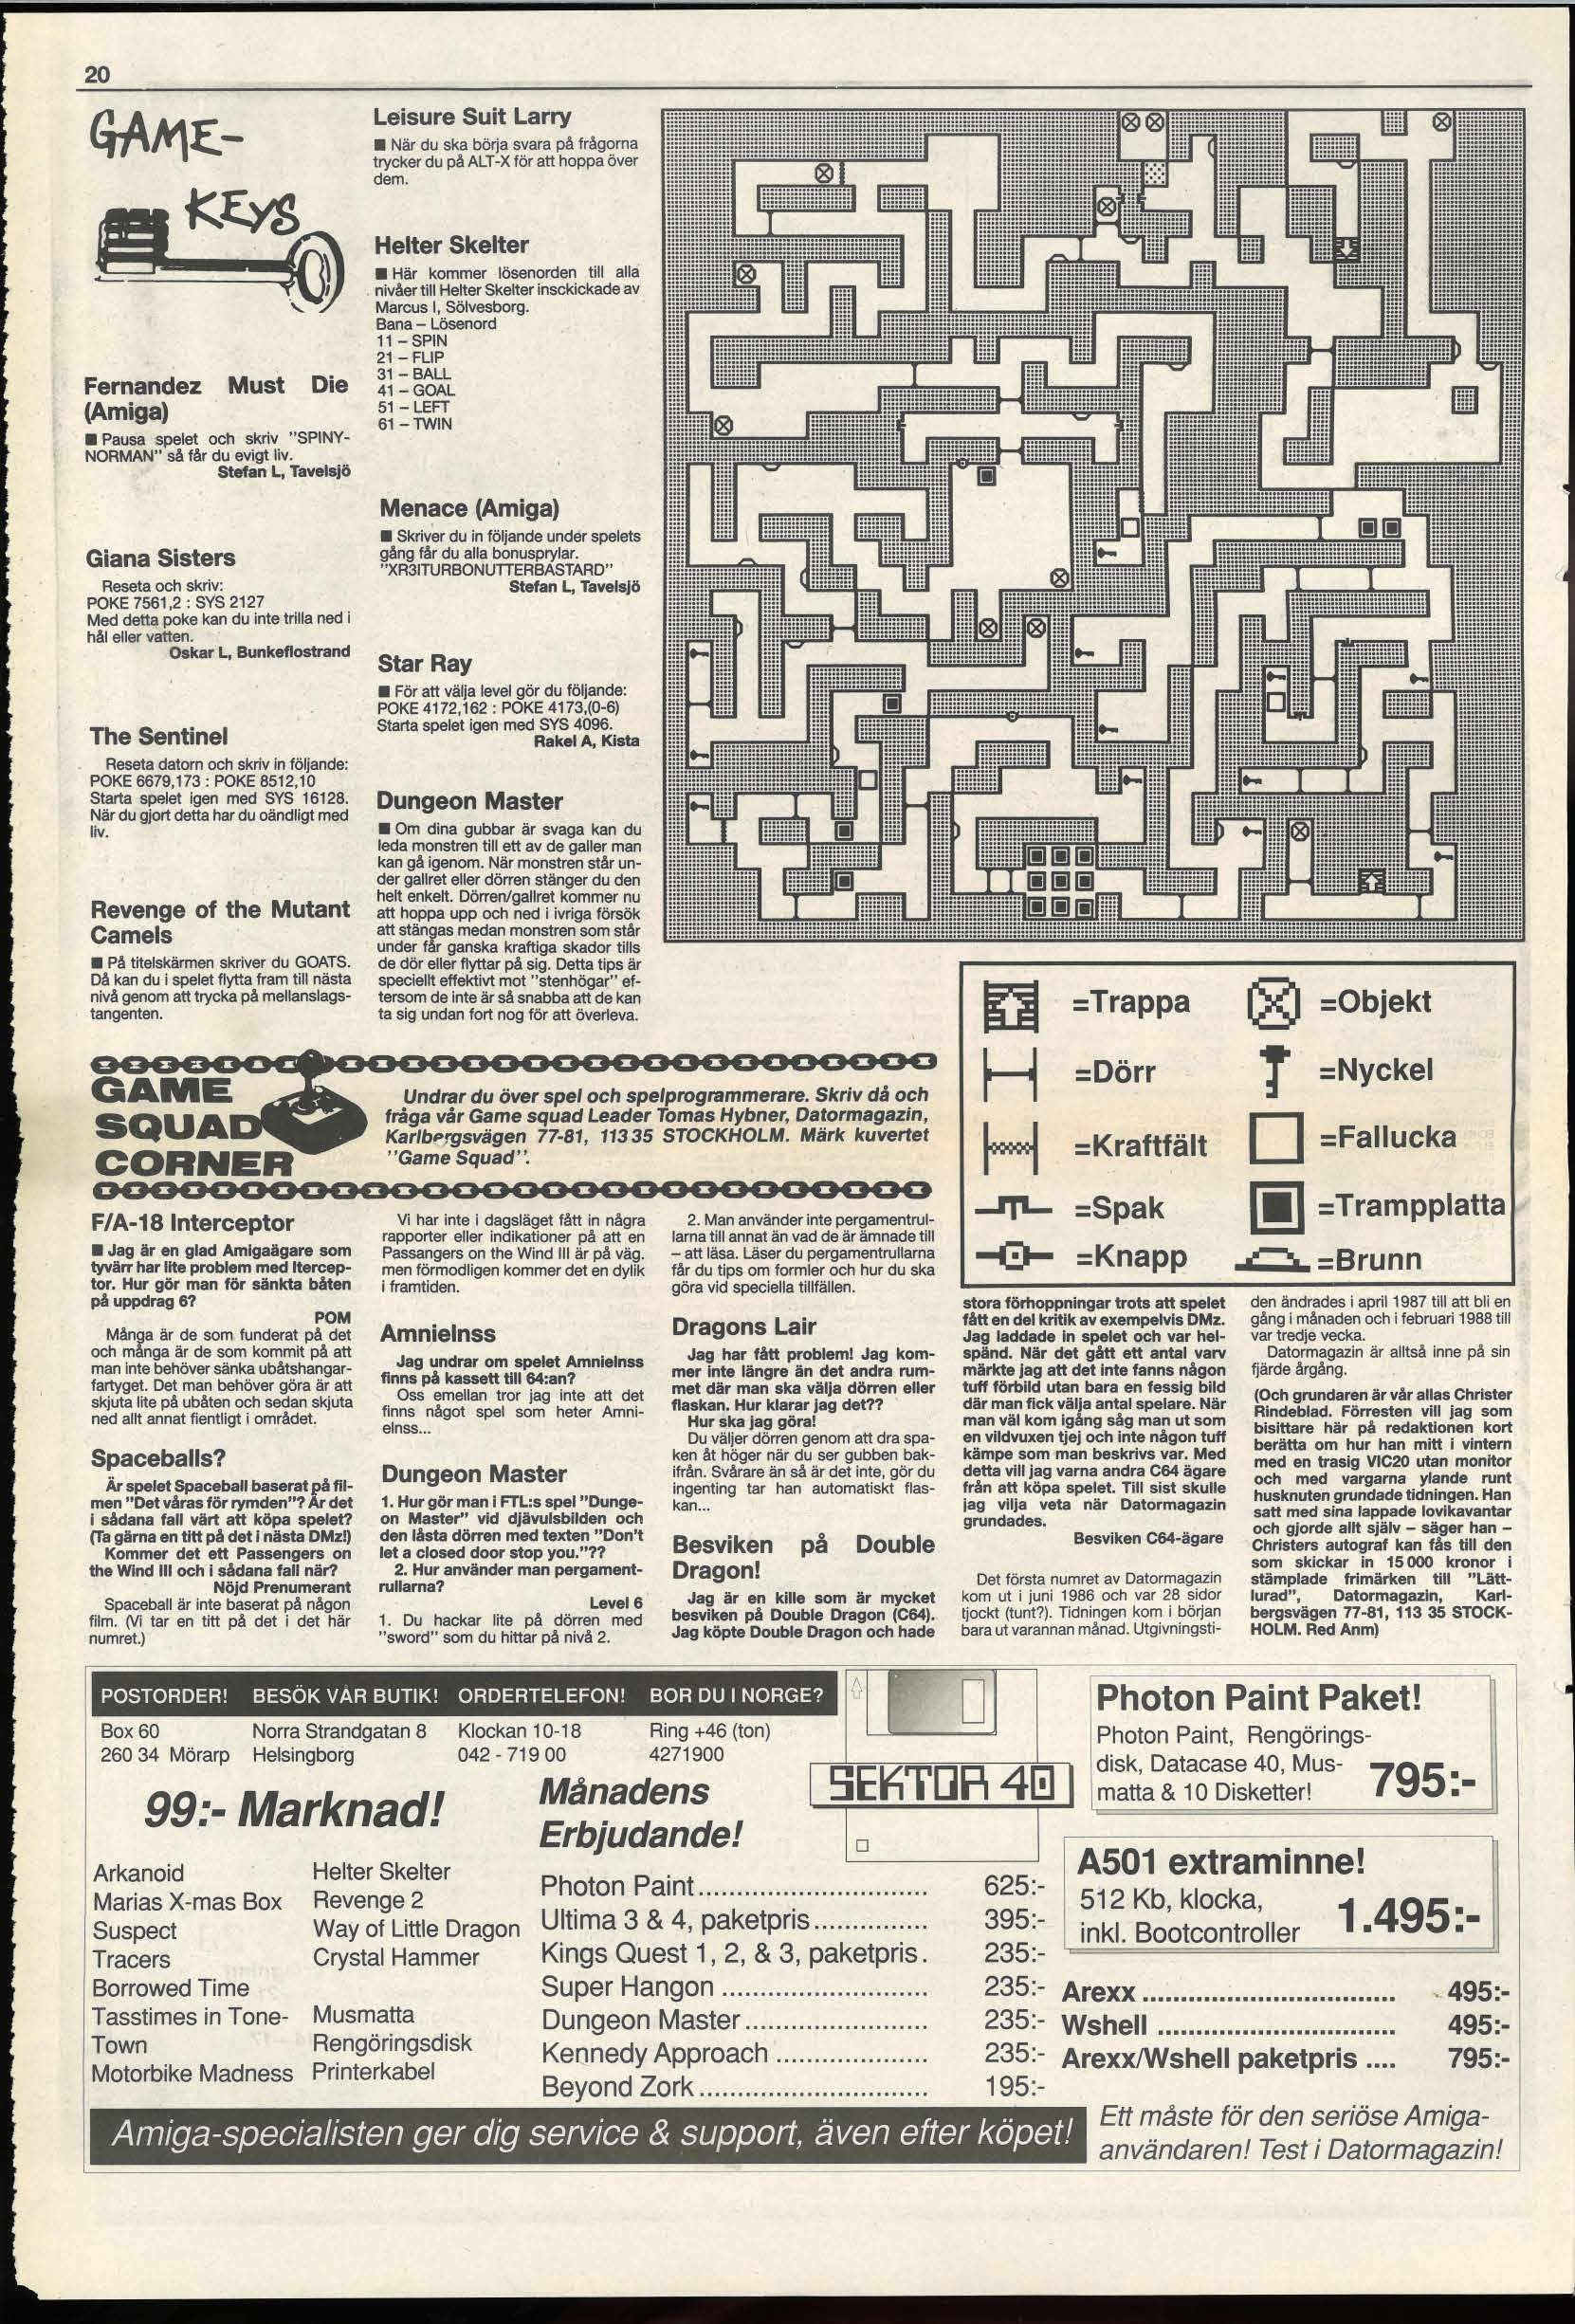 Dungeon Master Hints published in Swedish magazine 'Datormagazin', Vol 1989 No 4 March 1989, Page 20